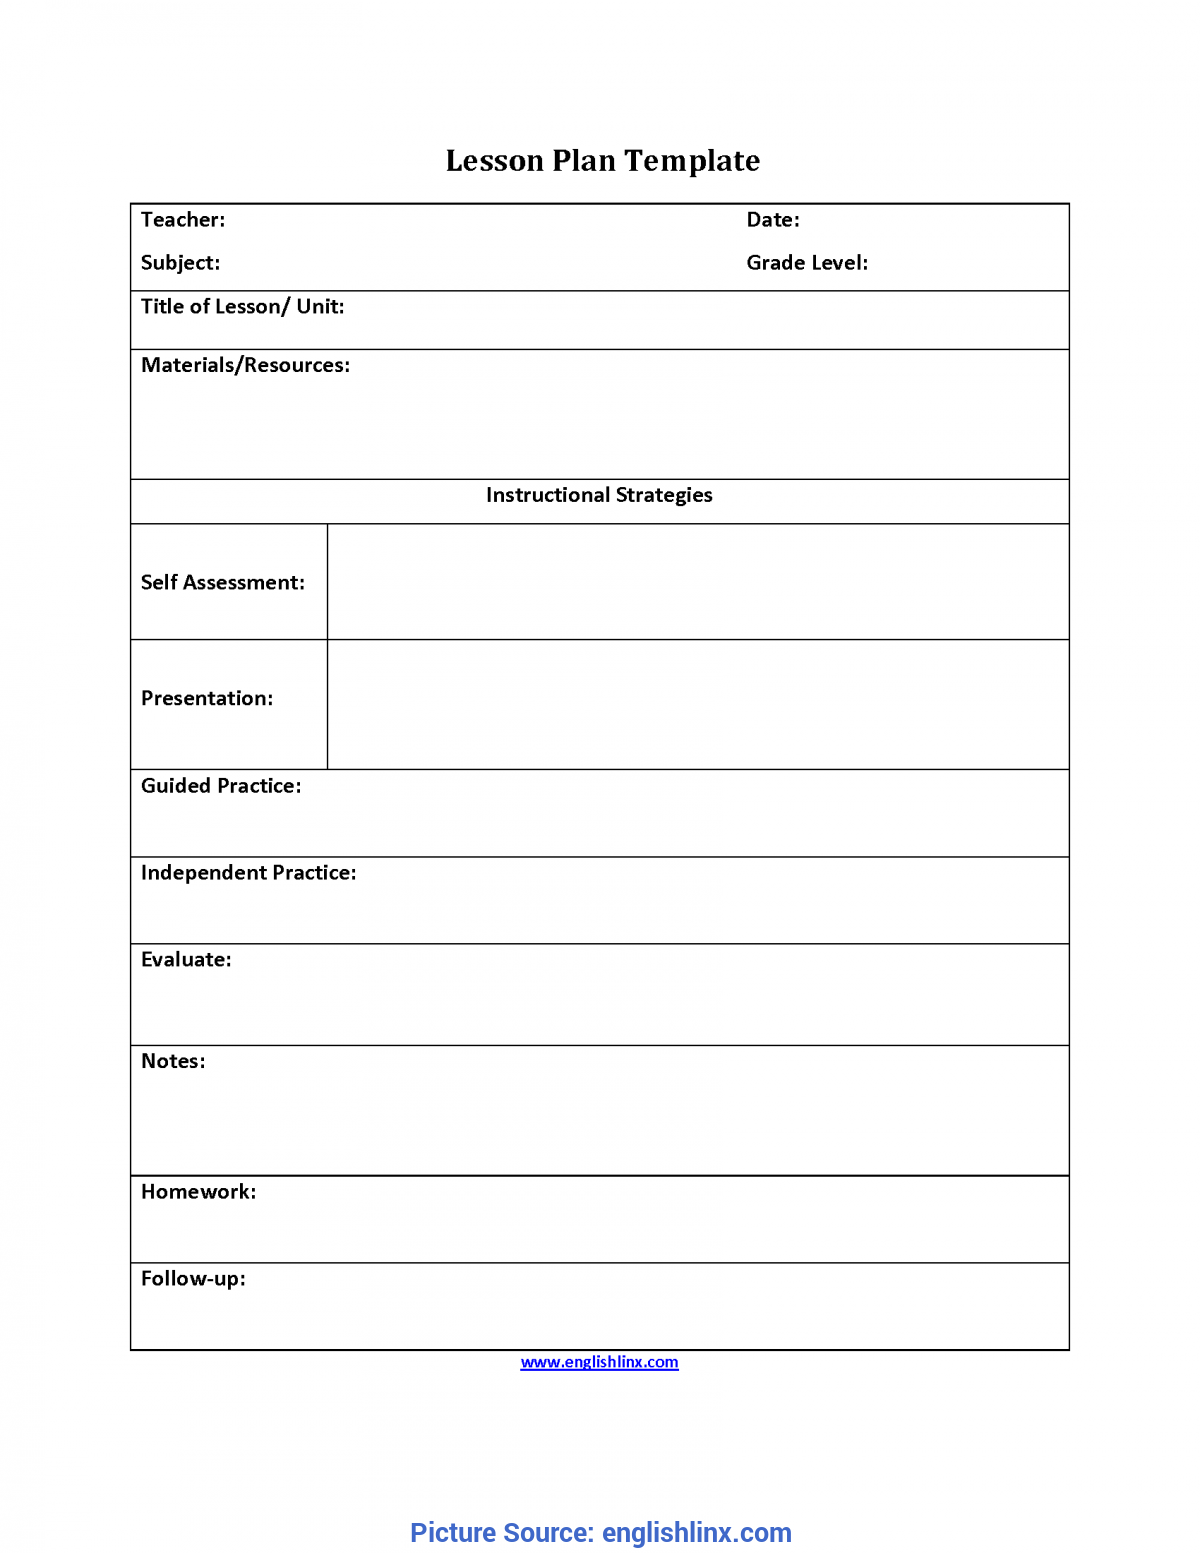 Valuable Guided Practice Lesson Plan Englishlinx.Com | Lesson Plan Temp